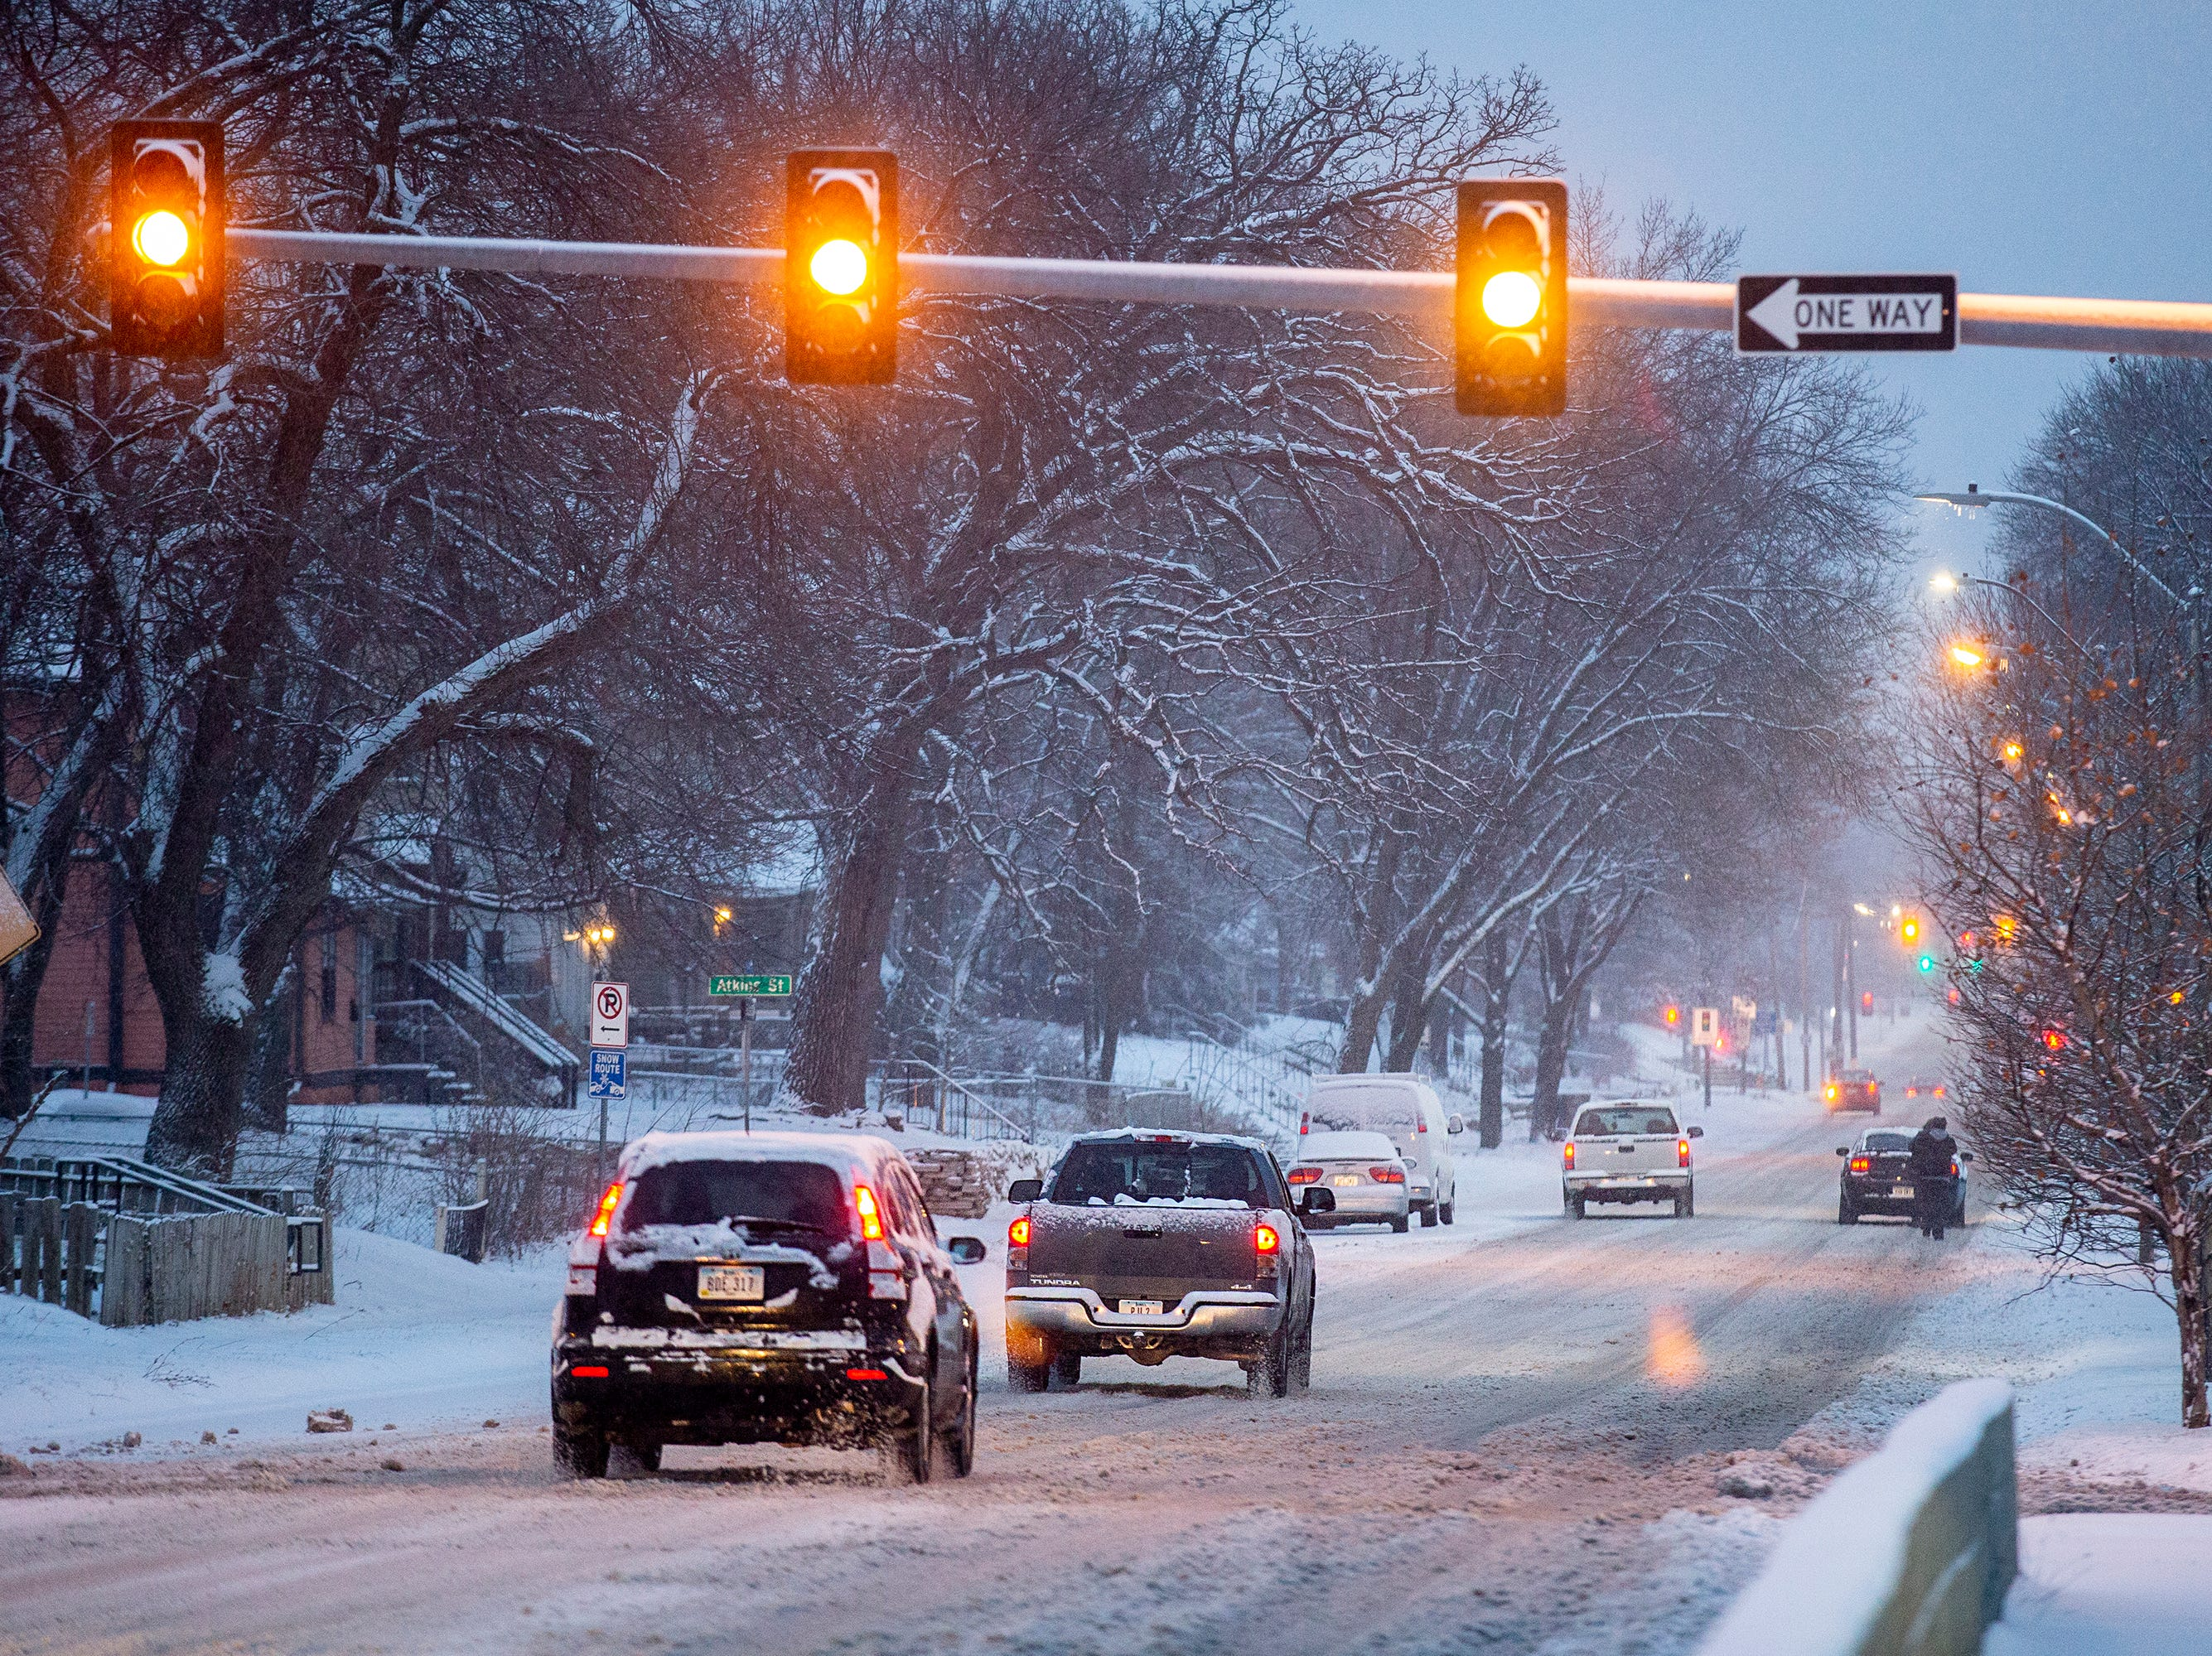 Drivers navigate snow covered roads just before dawn on Saturday, Jan. 12, 2019, in Des Moines.